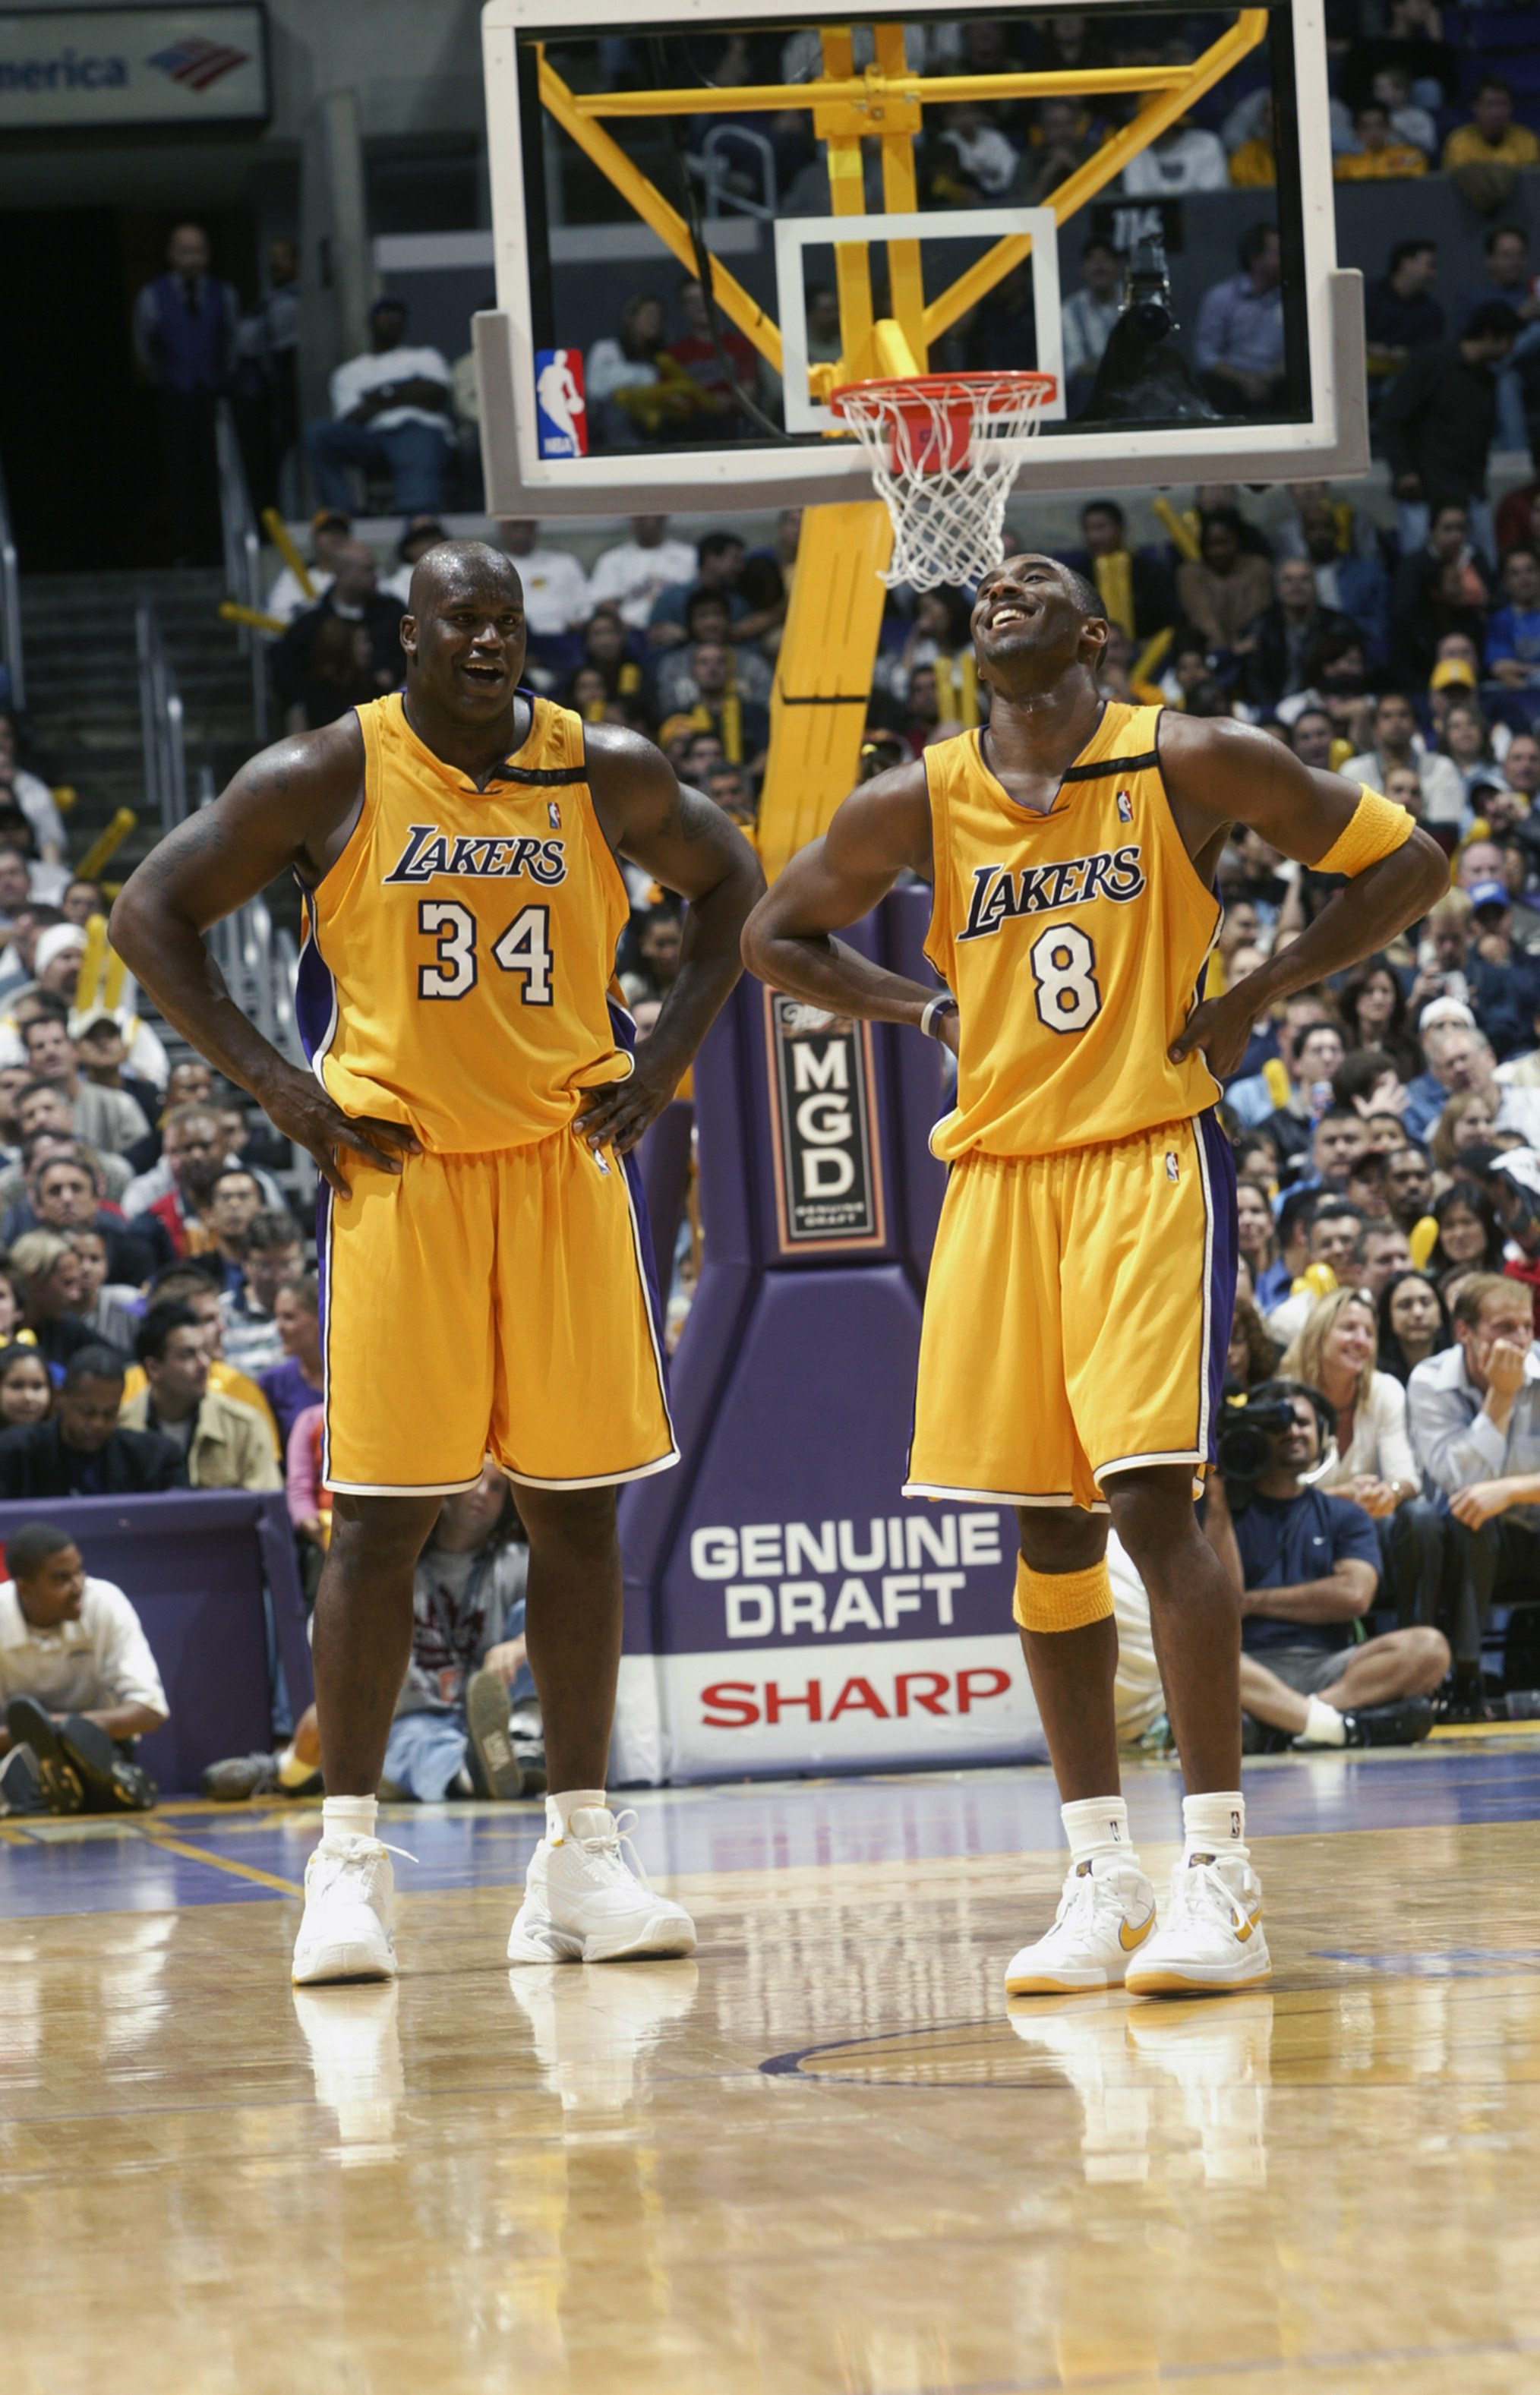 LOS ANGELES - NOVEMBER 22:  Shaquille O'Neal #34 and Kobe Bryant #8 of the Los Angeles Lakers laugh during the NBA game against the Chicago Bulls at Staples Center on November 22, 2002 in Los Angeles, California.  The Lakers won 86-73.  NOTE TO USER: User